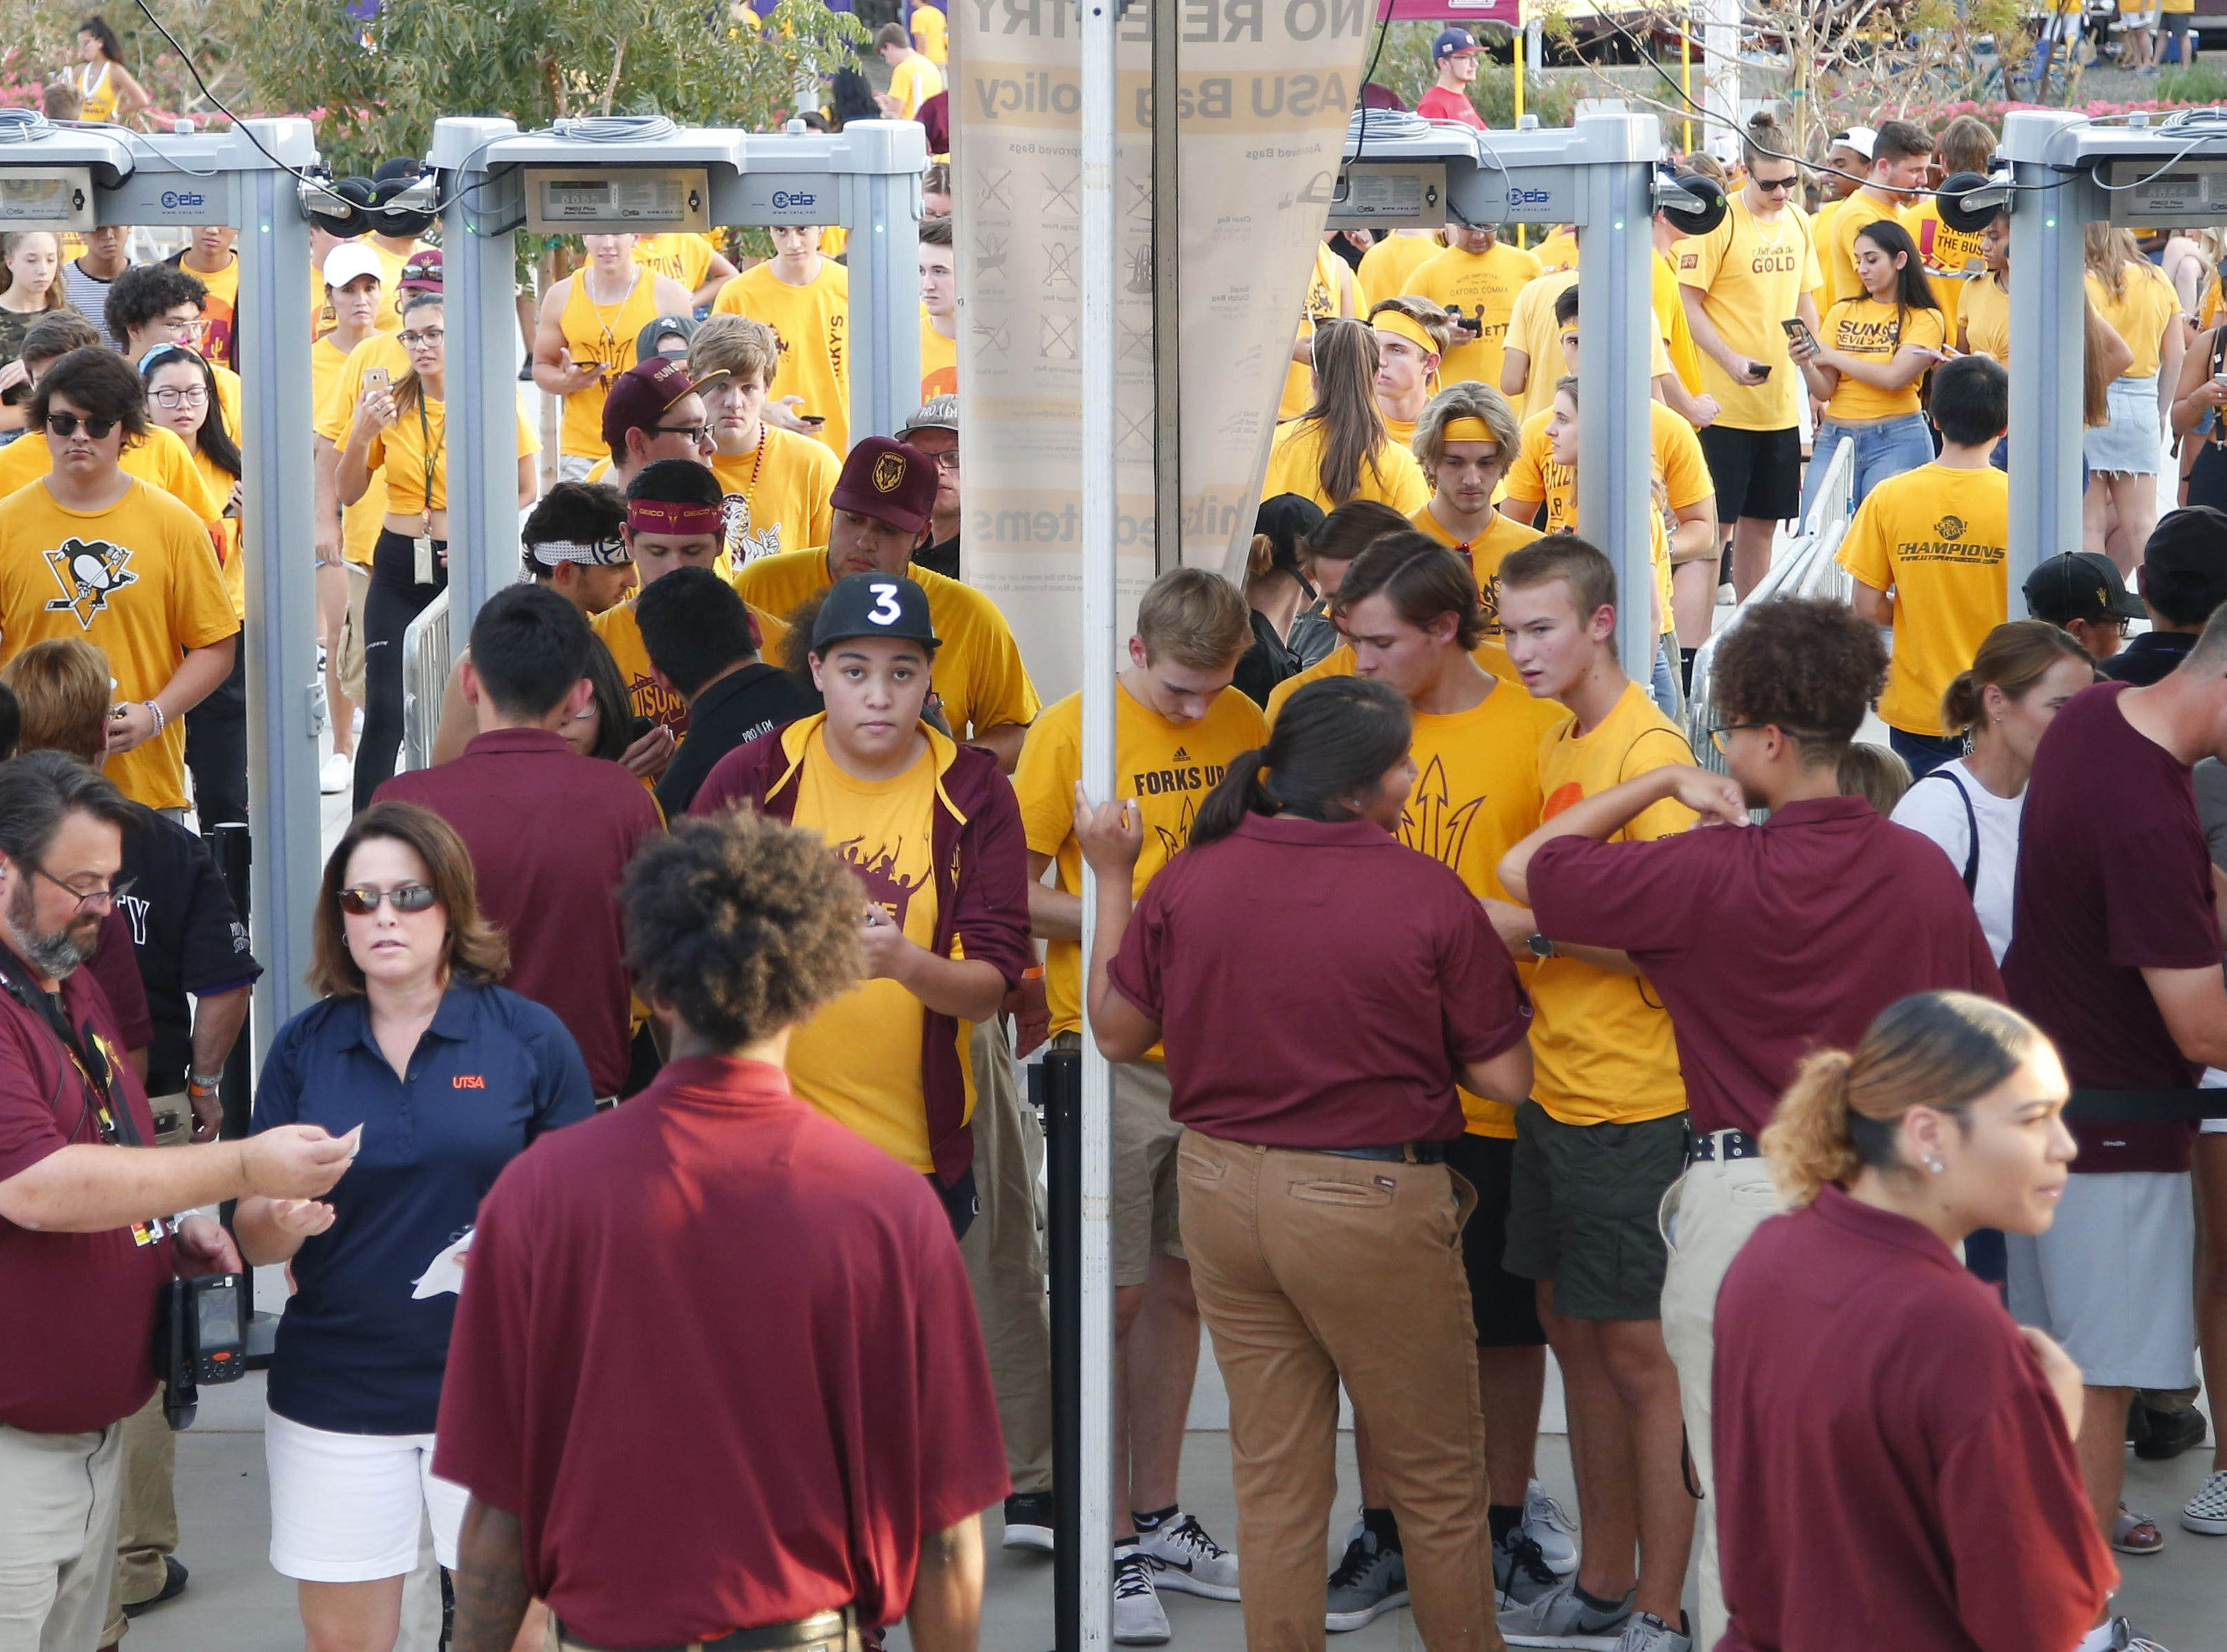 Fans file through mental detectors before the ASU vs. UTSA football game at Sun Devil Stadium in Tempe on September 1, 2018.